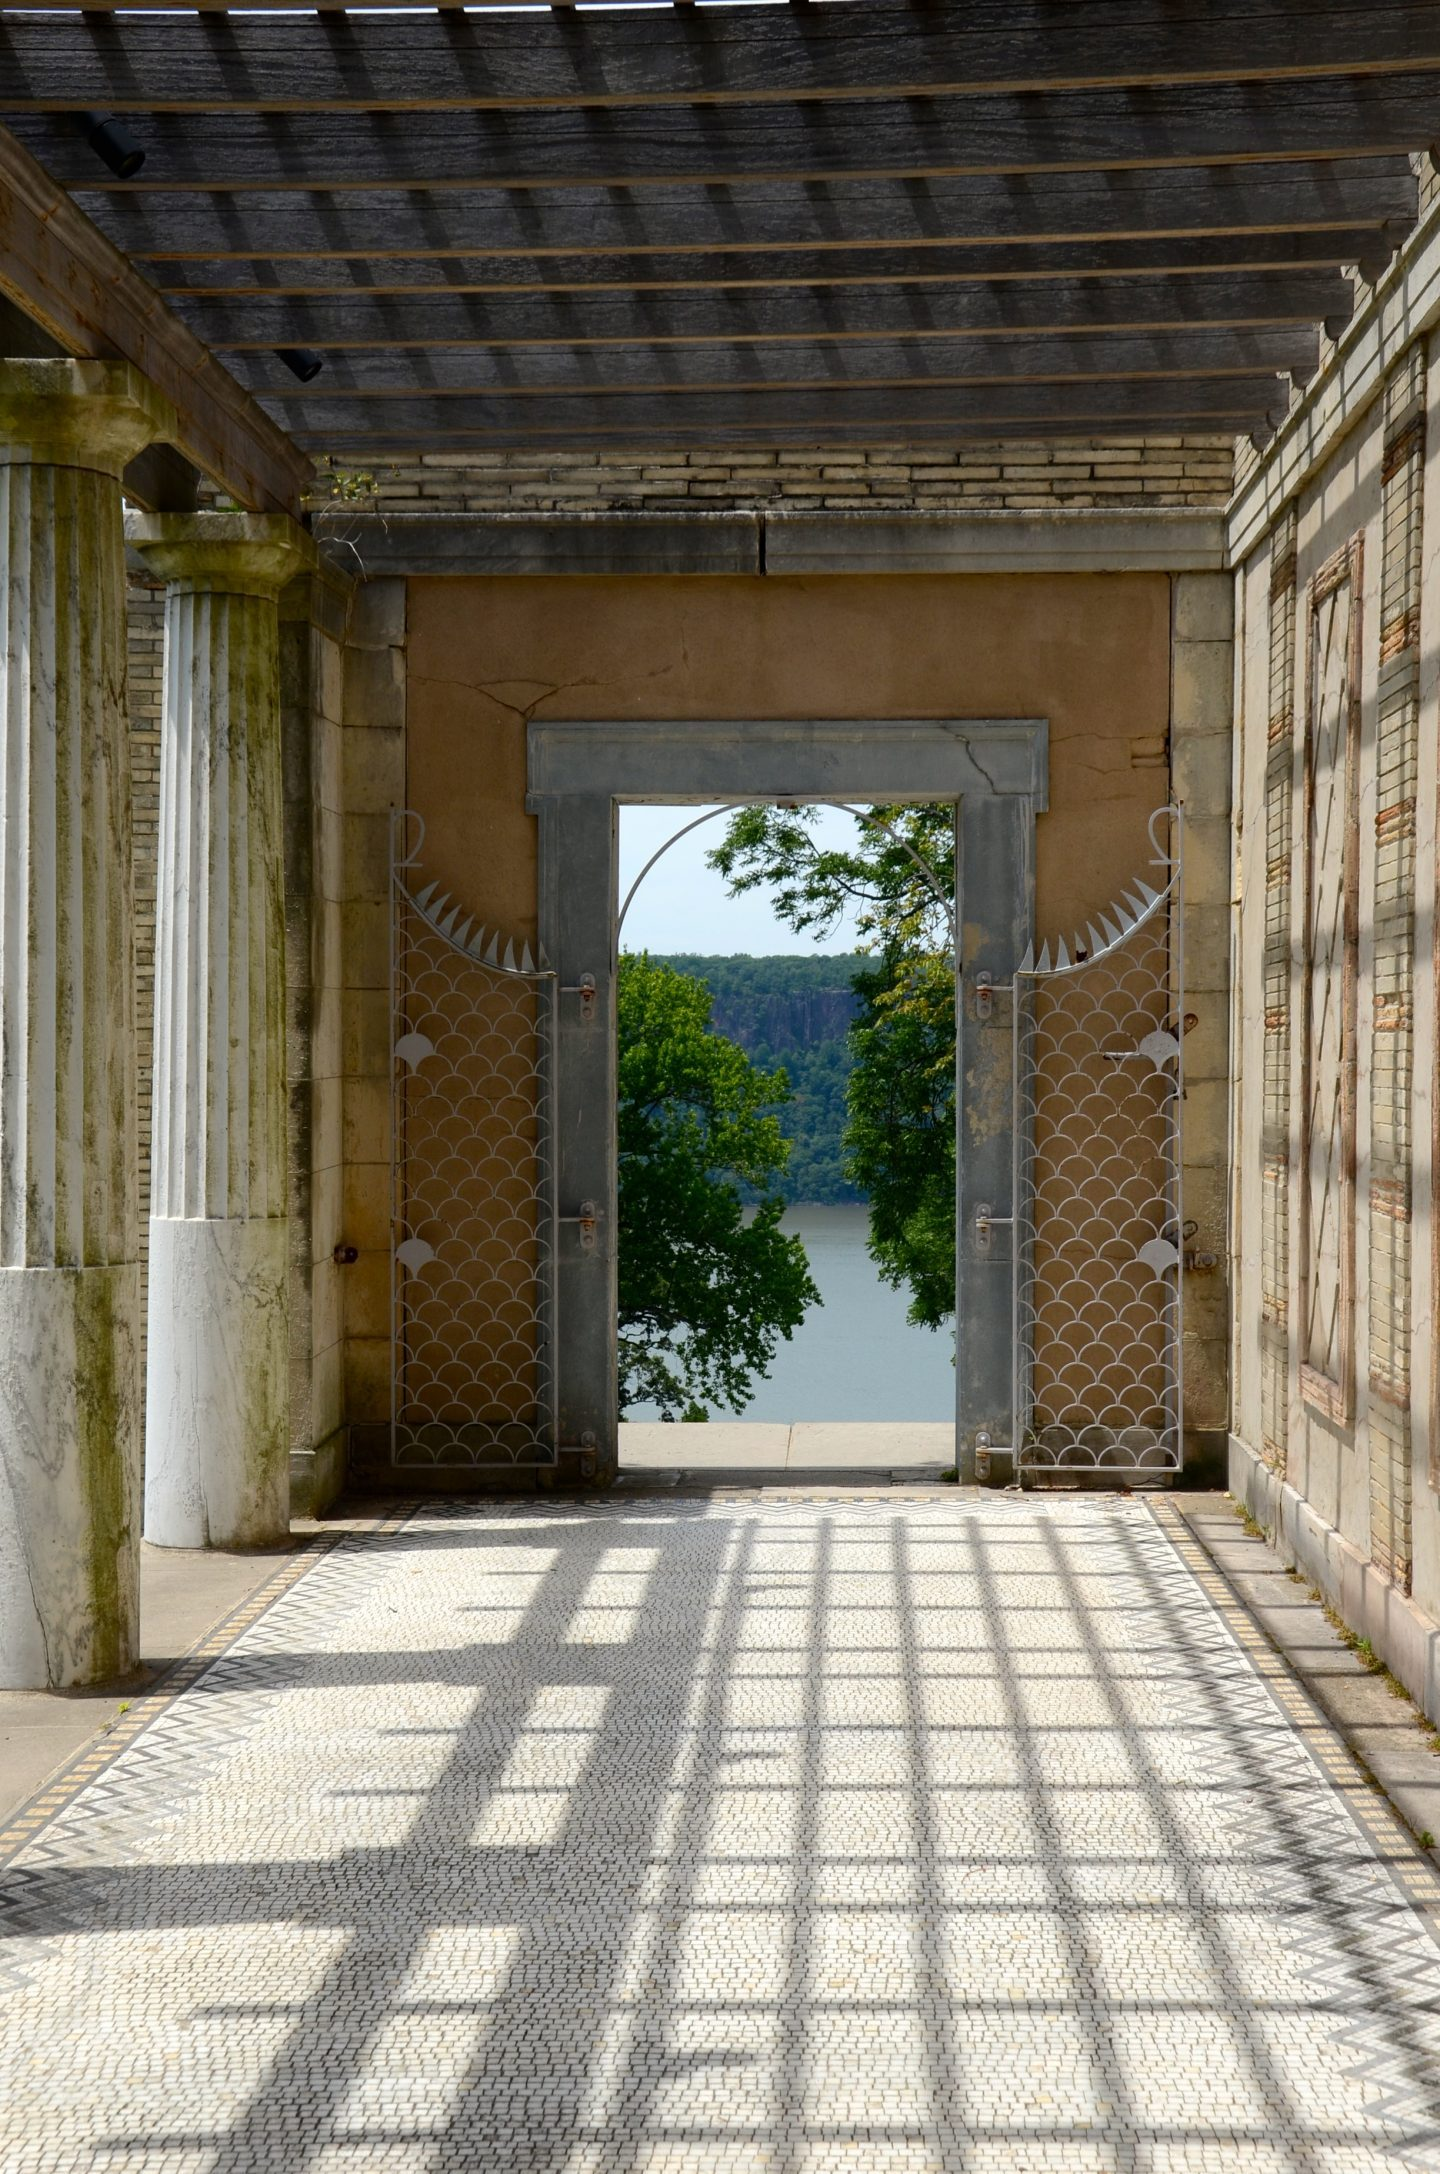 View of the Hudson River through a doorway at Untermyer Park and Gardens in Yonkers New York.